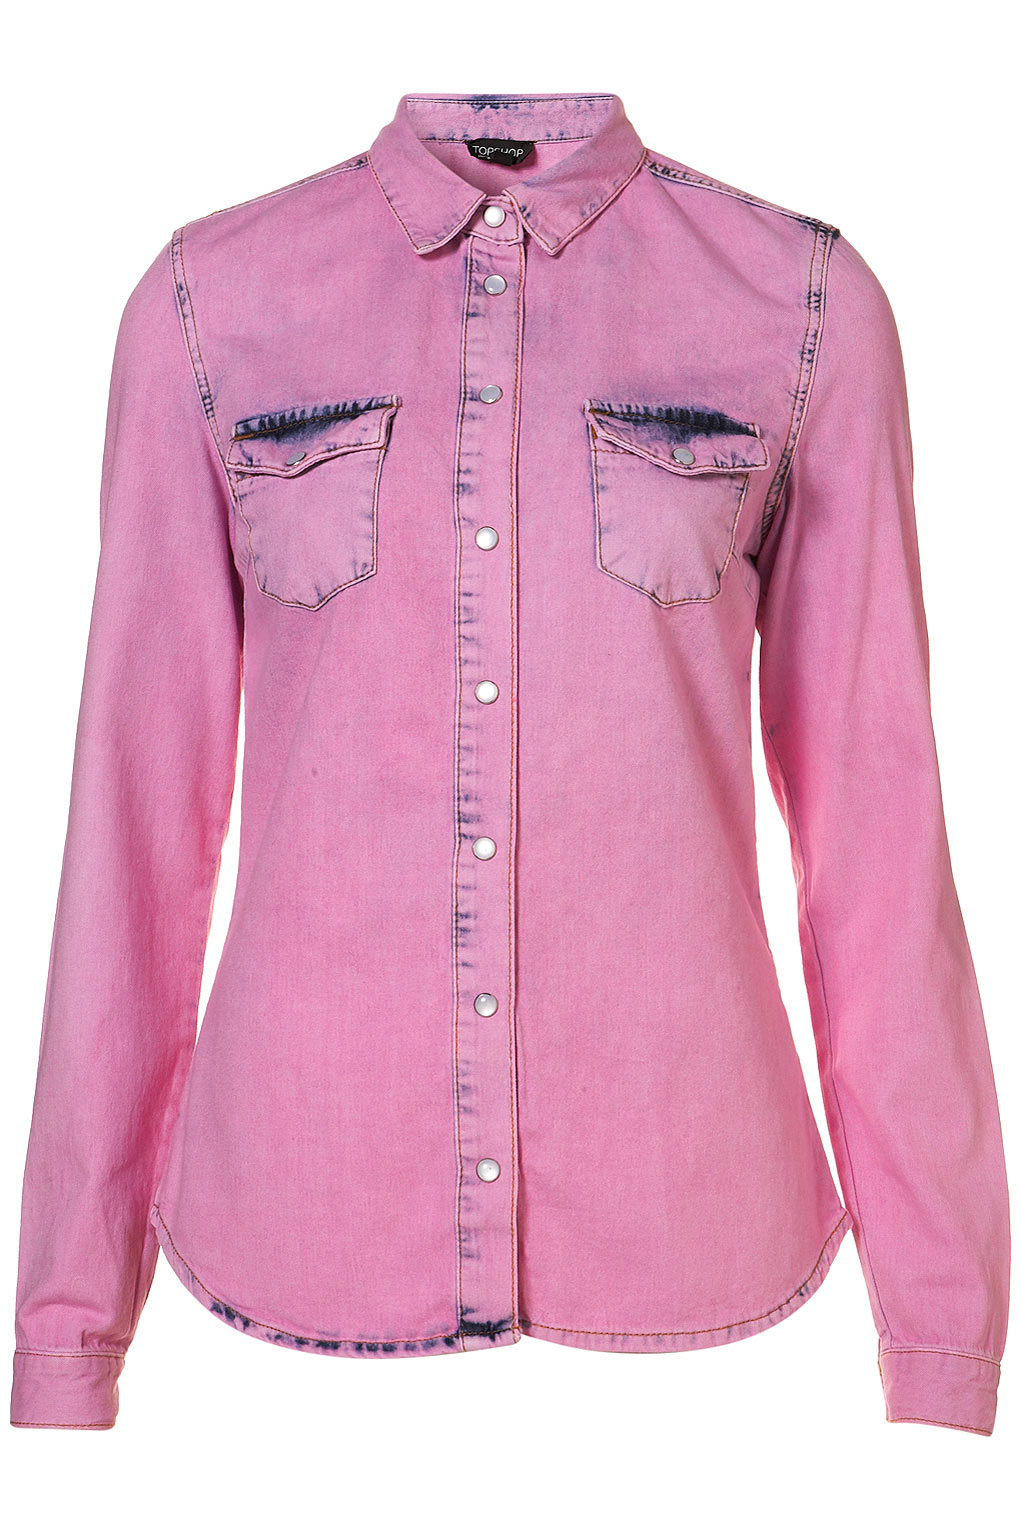 topshop moto overdyed pink denim shirt in pink lyst ForWomens Denim Shirts Topshop